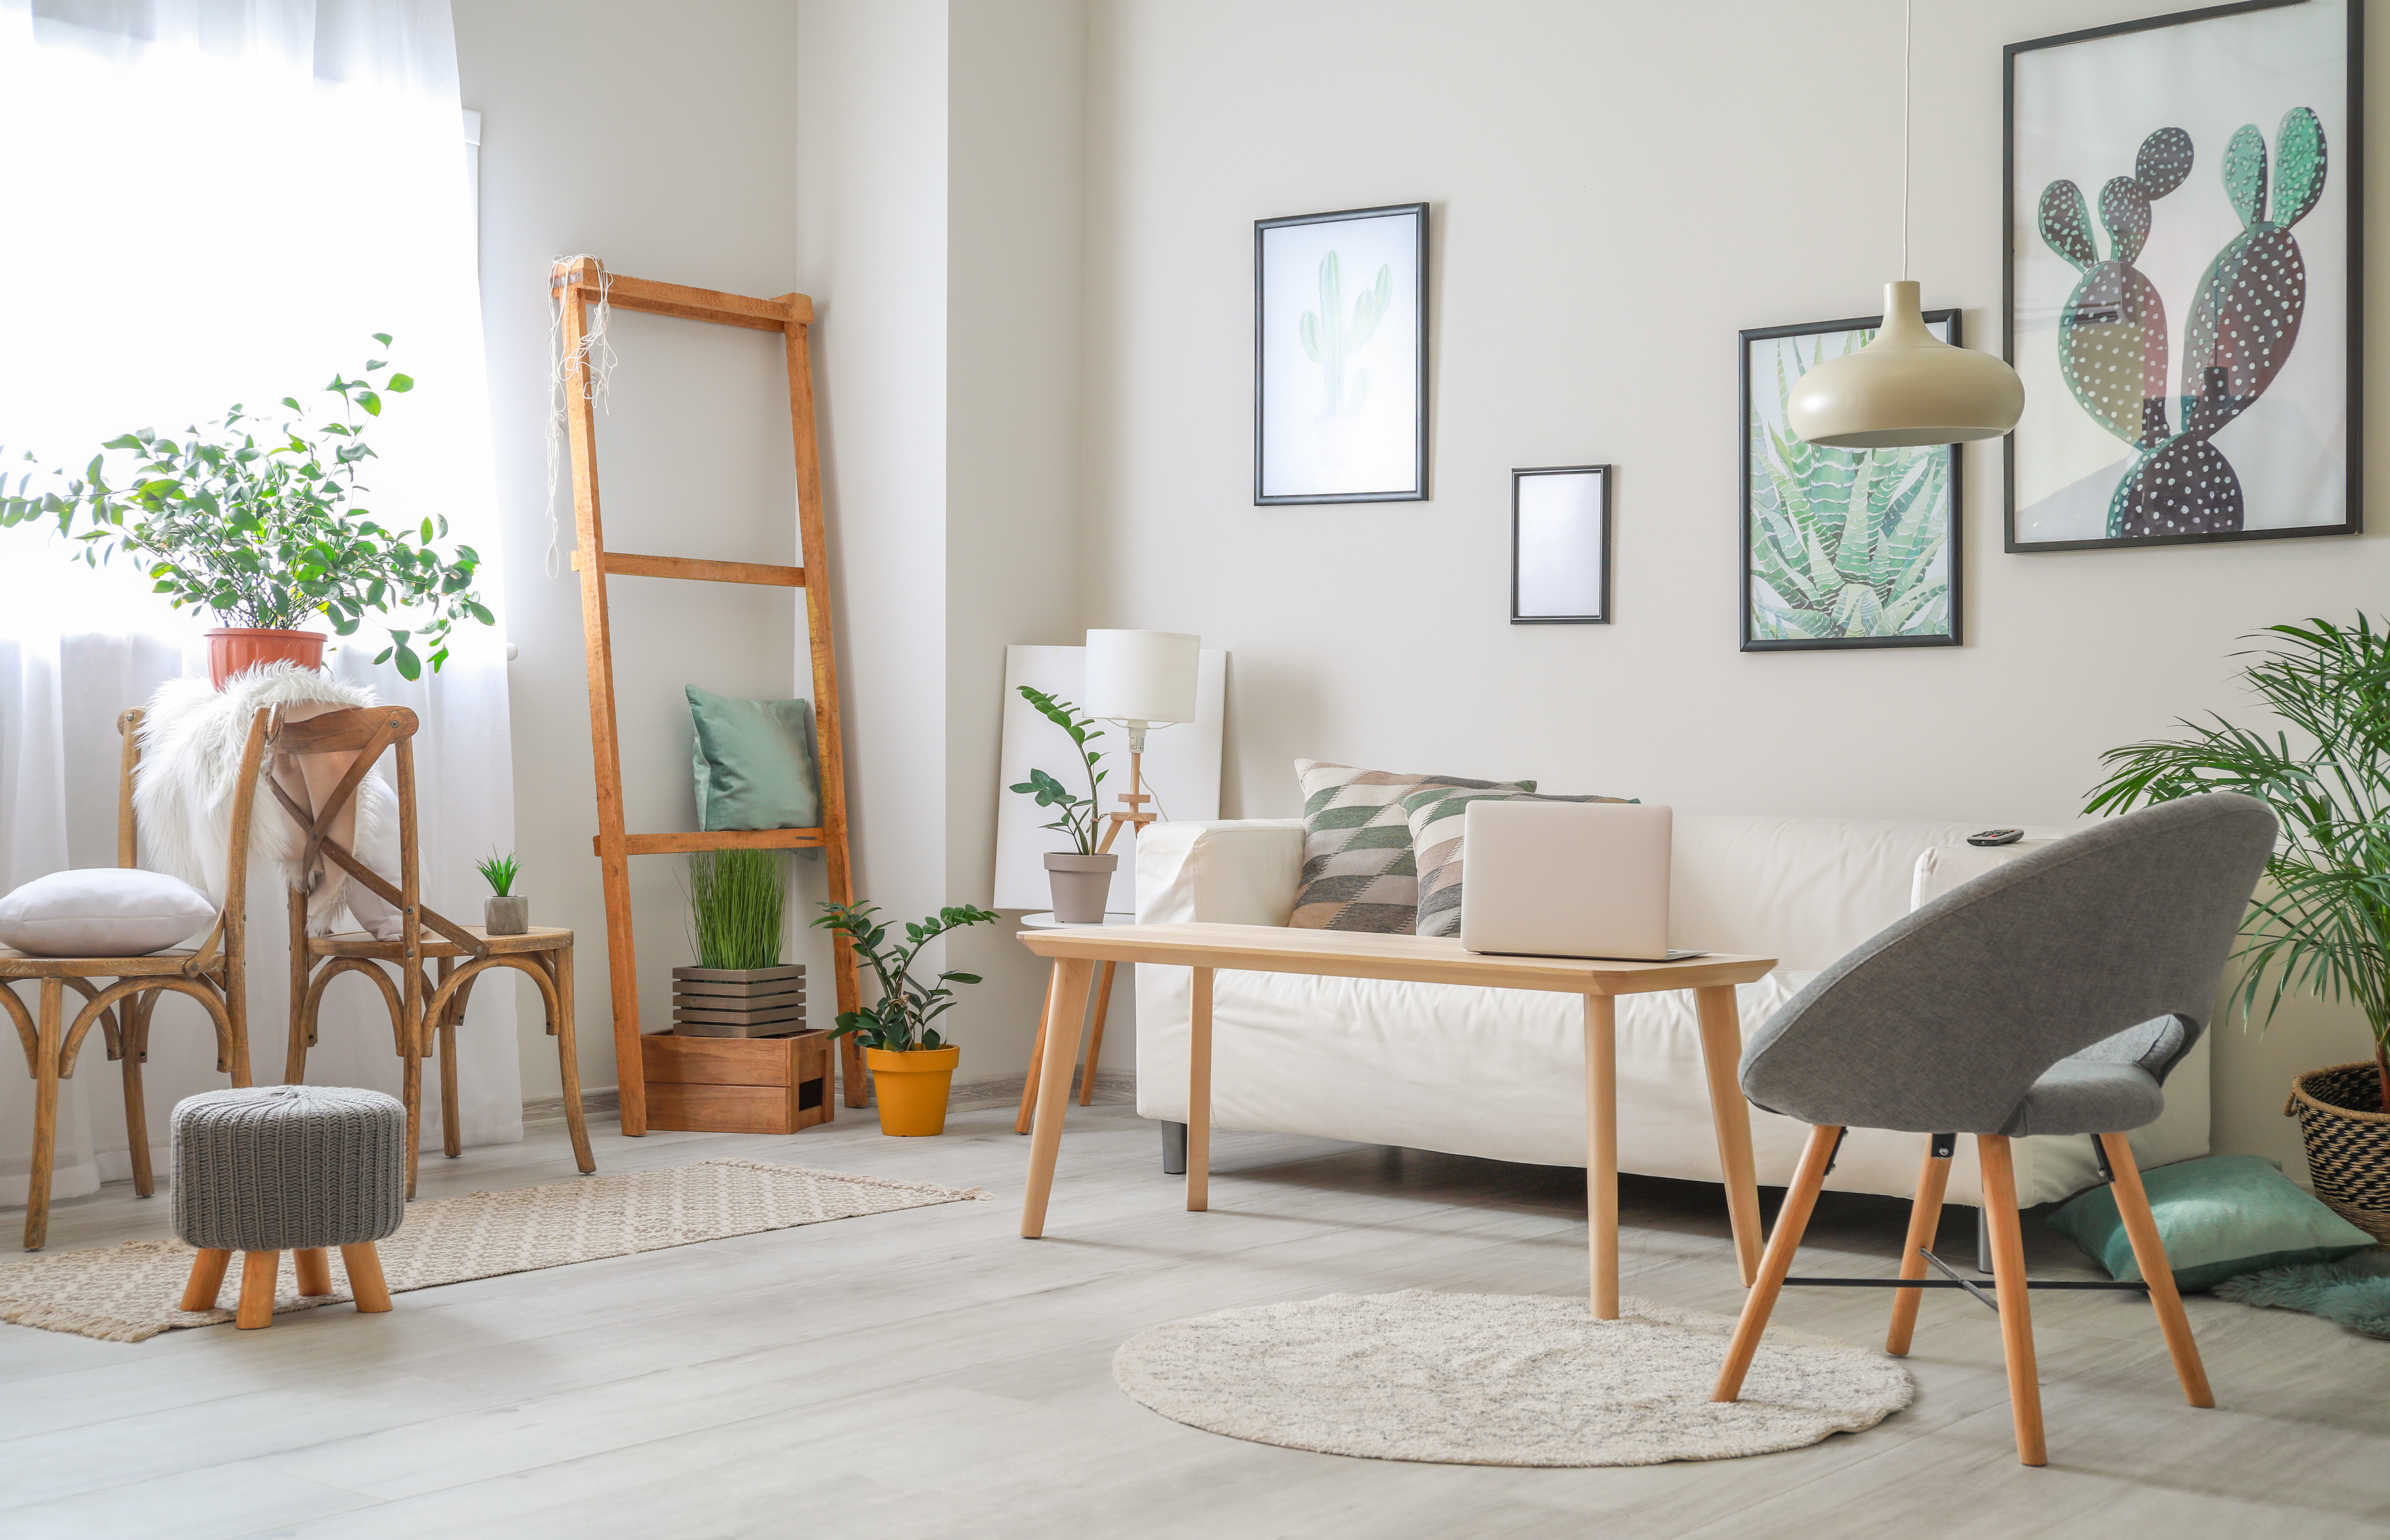 A white living room with gray and wood furniture.